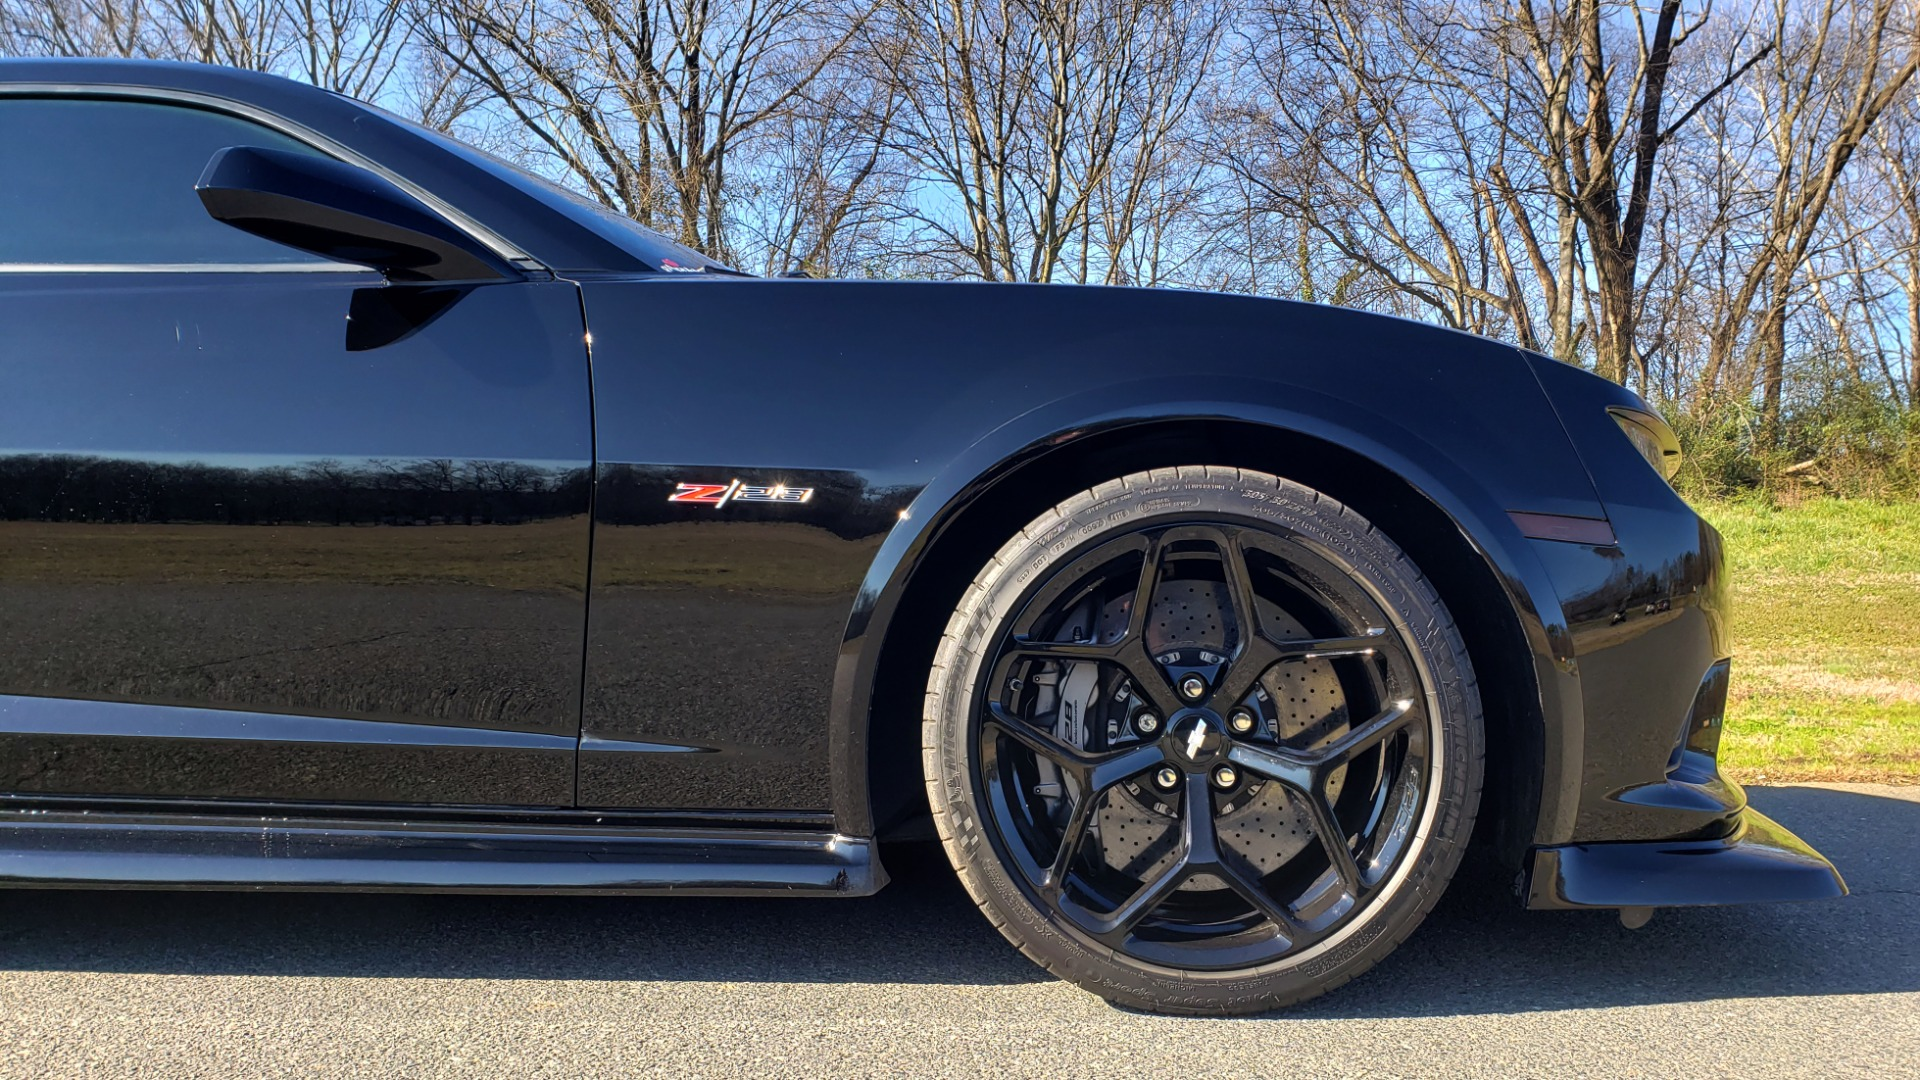 Used 2014 Chevrolet CAMARO Z/28 / 427 7.0L V8 505HP / RADIO / AIR CONDITIONING for sale Sold at Formula Imports in Charlotte NC 28227 34